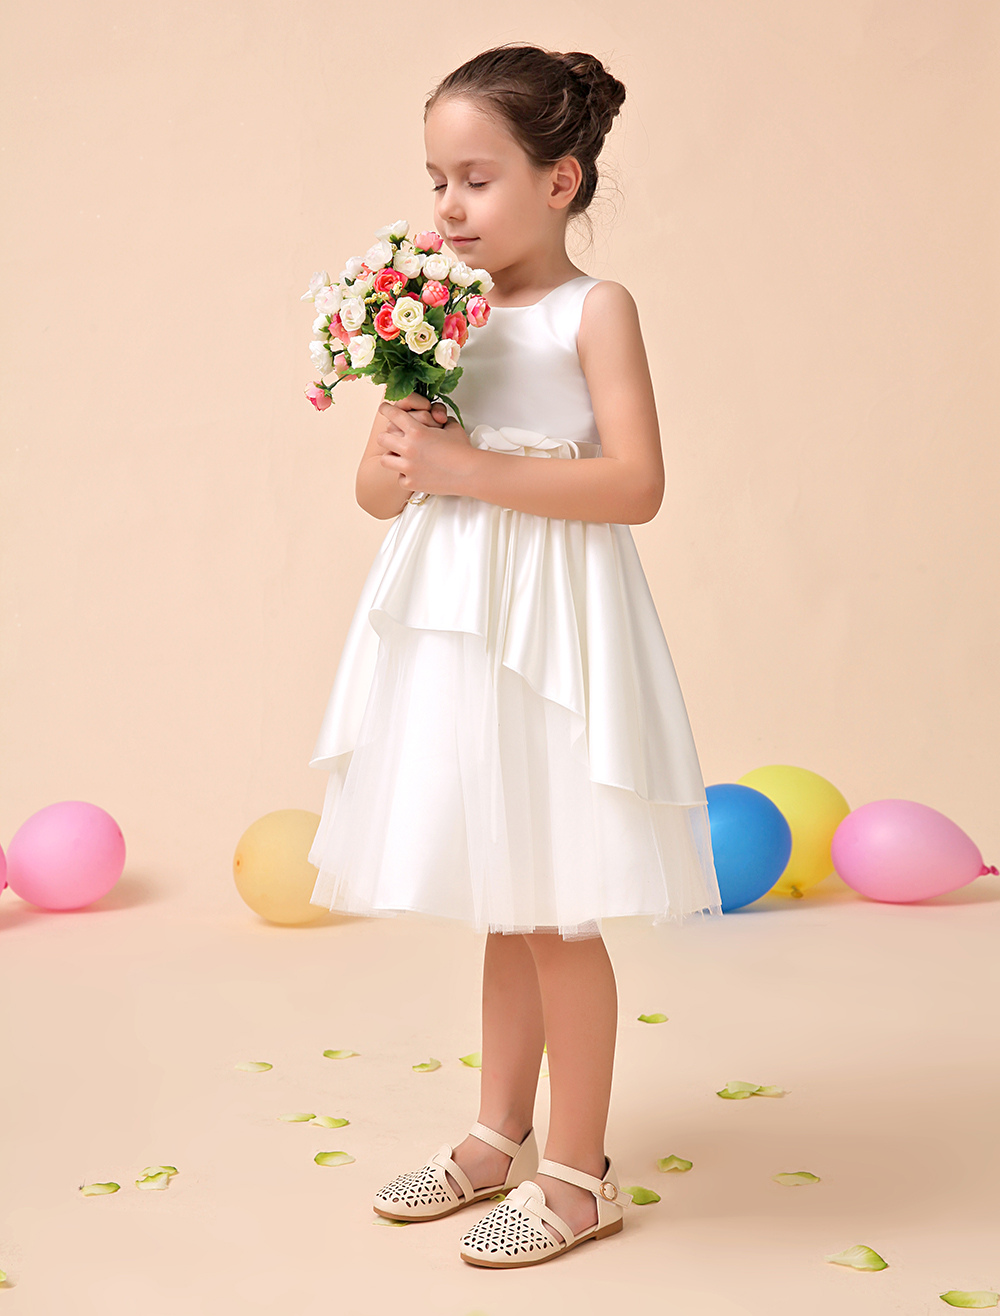 Buy Ivory A-line Square Neck Knee-Length Flower Satin Flower Girl Dress for $39.19 in Milanoo store